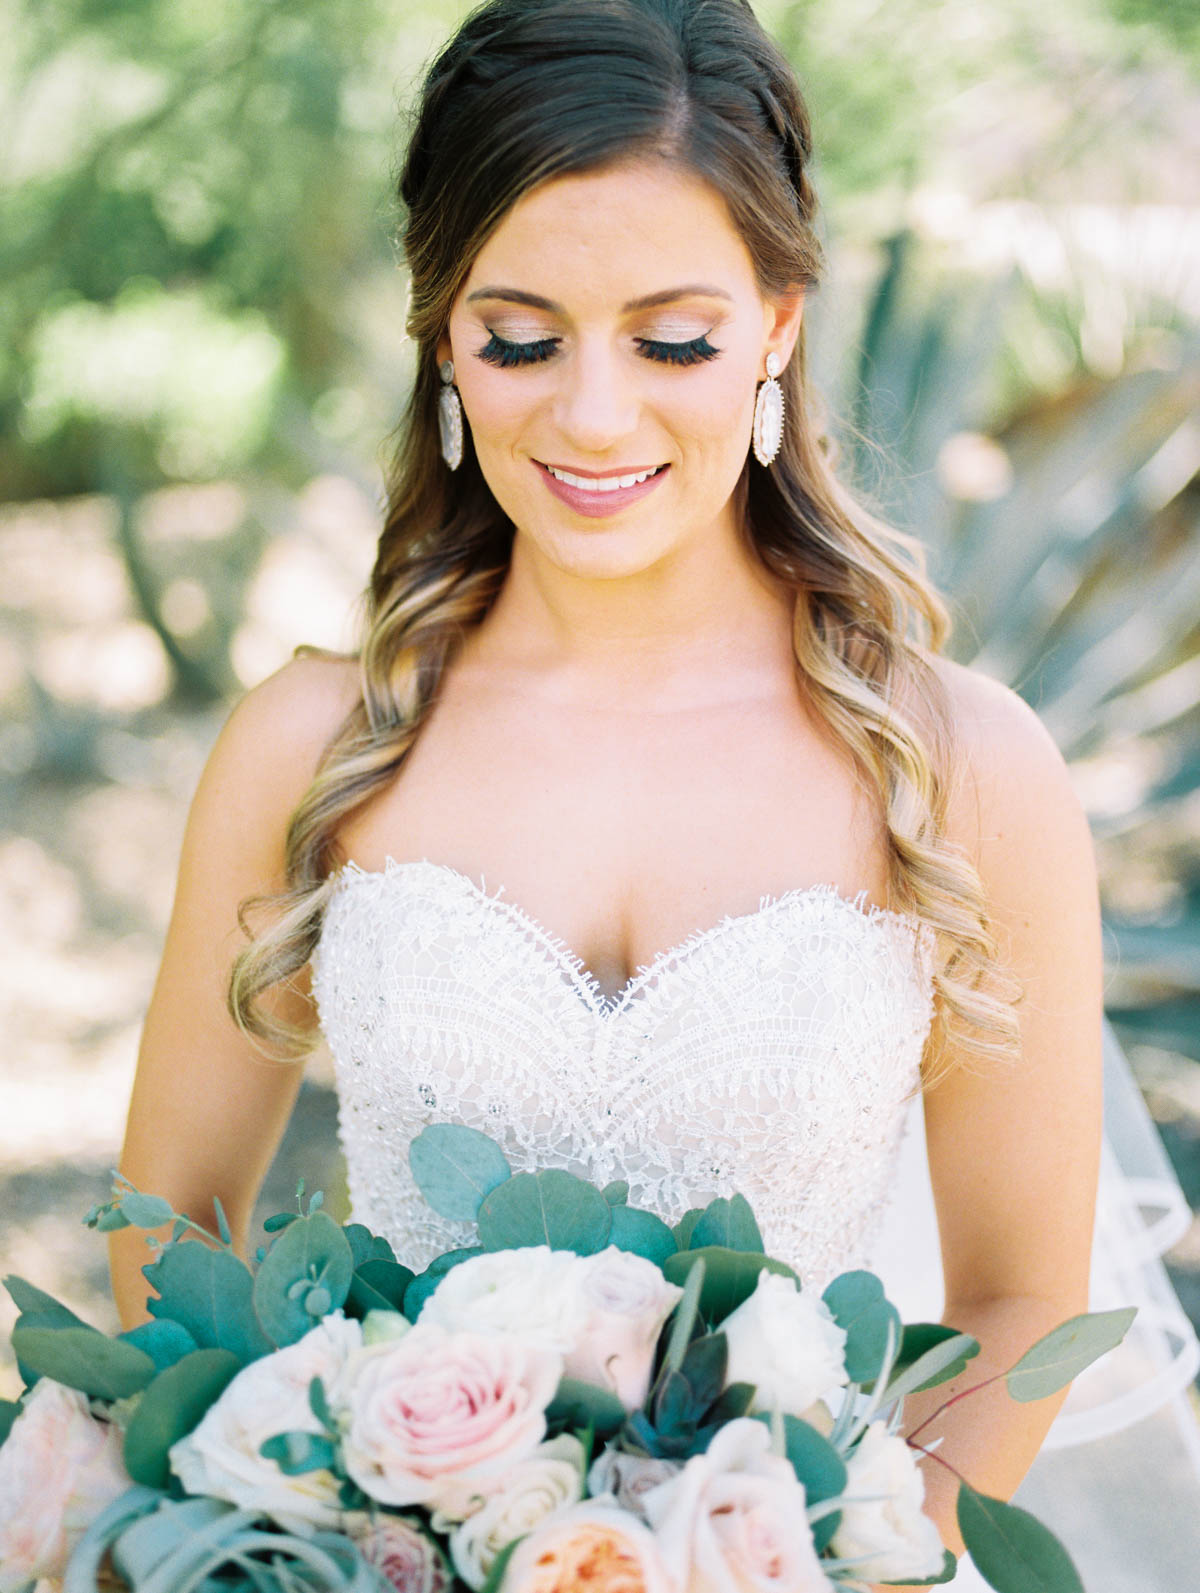 Stunning bride Jamie with hair & makeup by Heather Van Houten captured by Tucson Wedding Photographers Betsy & John